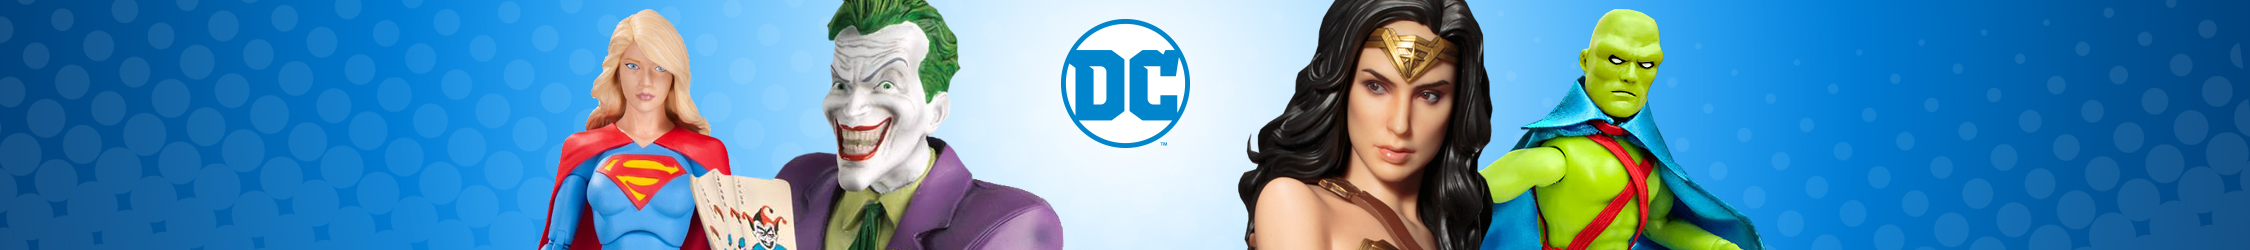 DC Comics Action Figures, Toys, Statues, & Collectibles